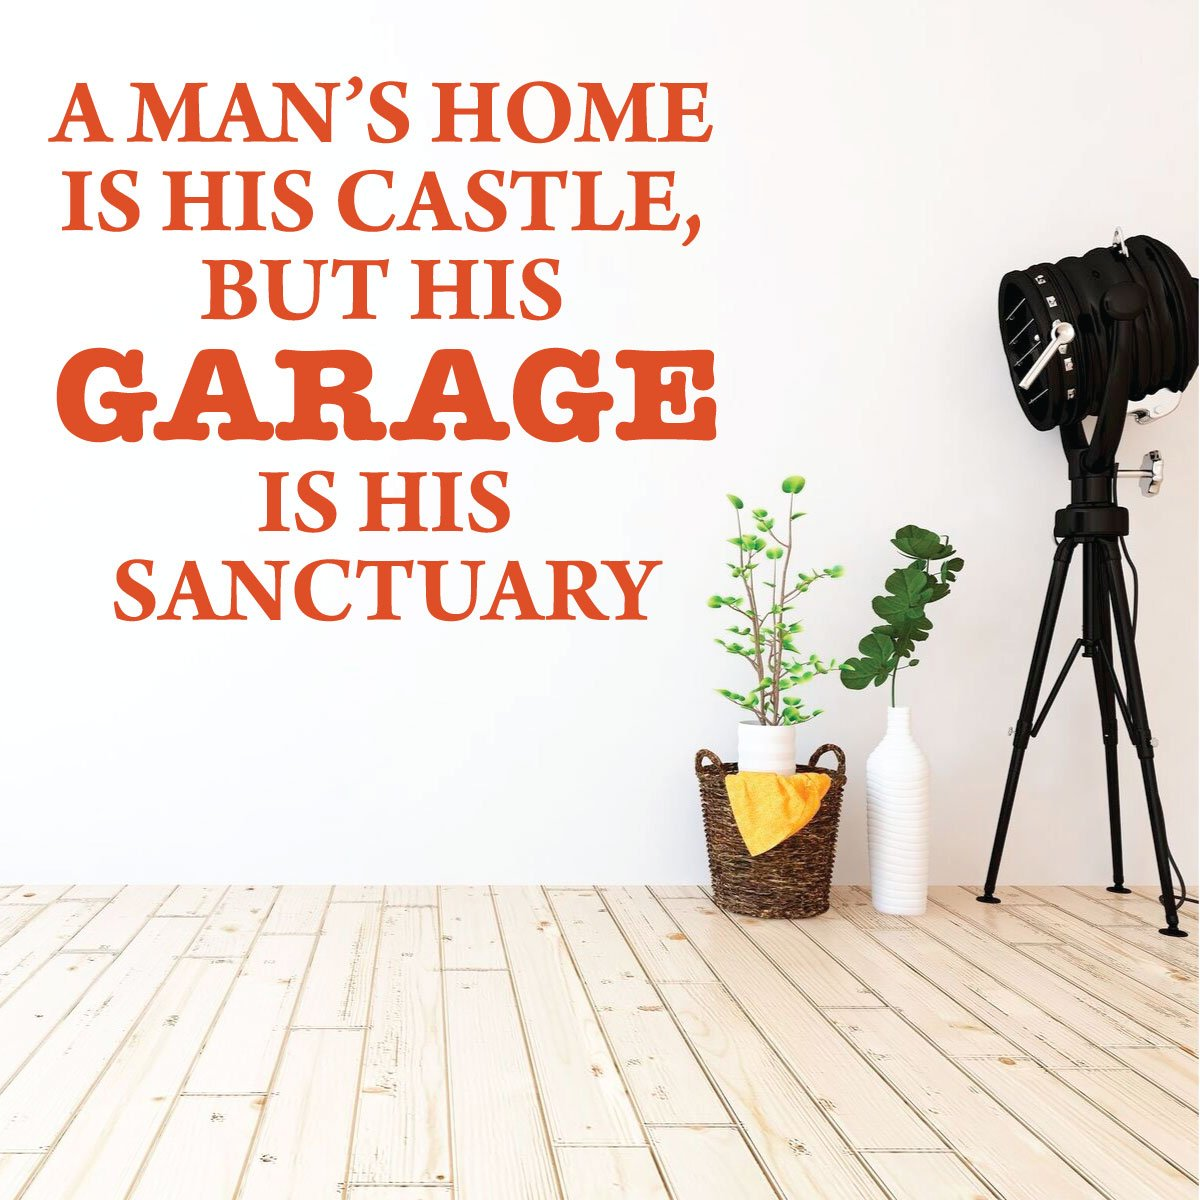 But HIs Garage Is His Sanctuary Game Room Or Man Cave Decor. Garage wall Decal Playroom A Mans Home Is His Castle Vinyl Sticker for Bedroom